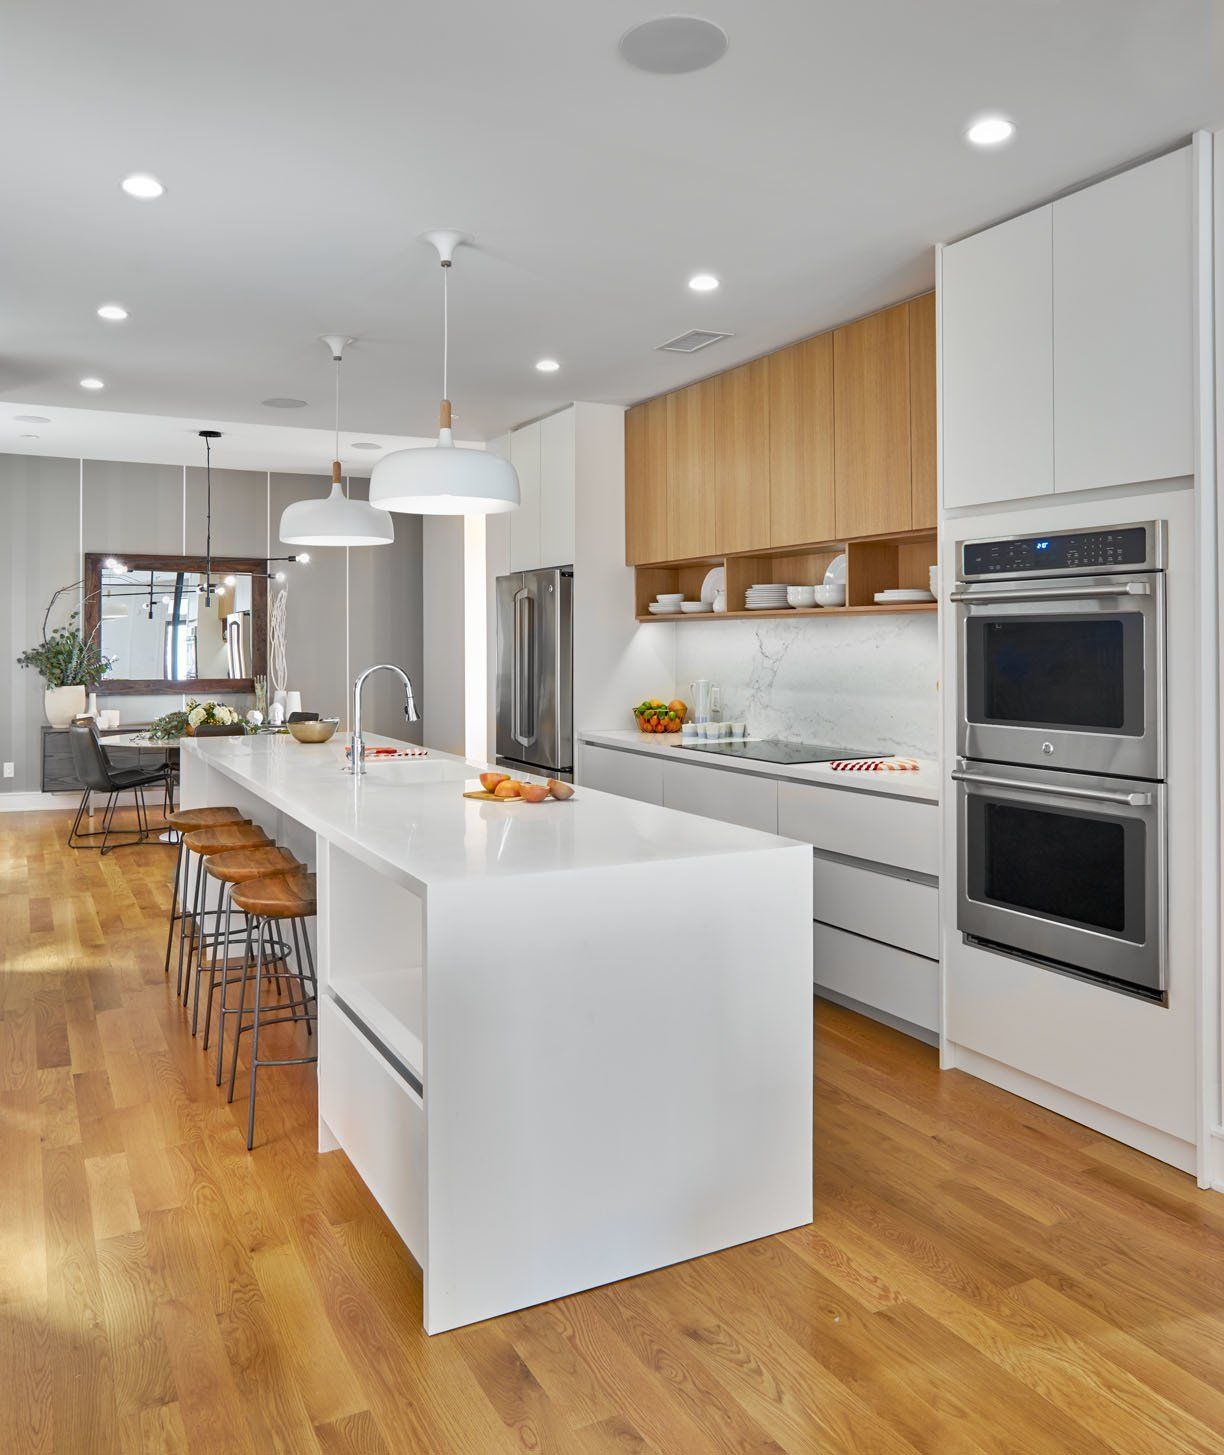 Undermount Lighting For Kitchen Cabinets: The Historic Ely Building In 2019